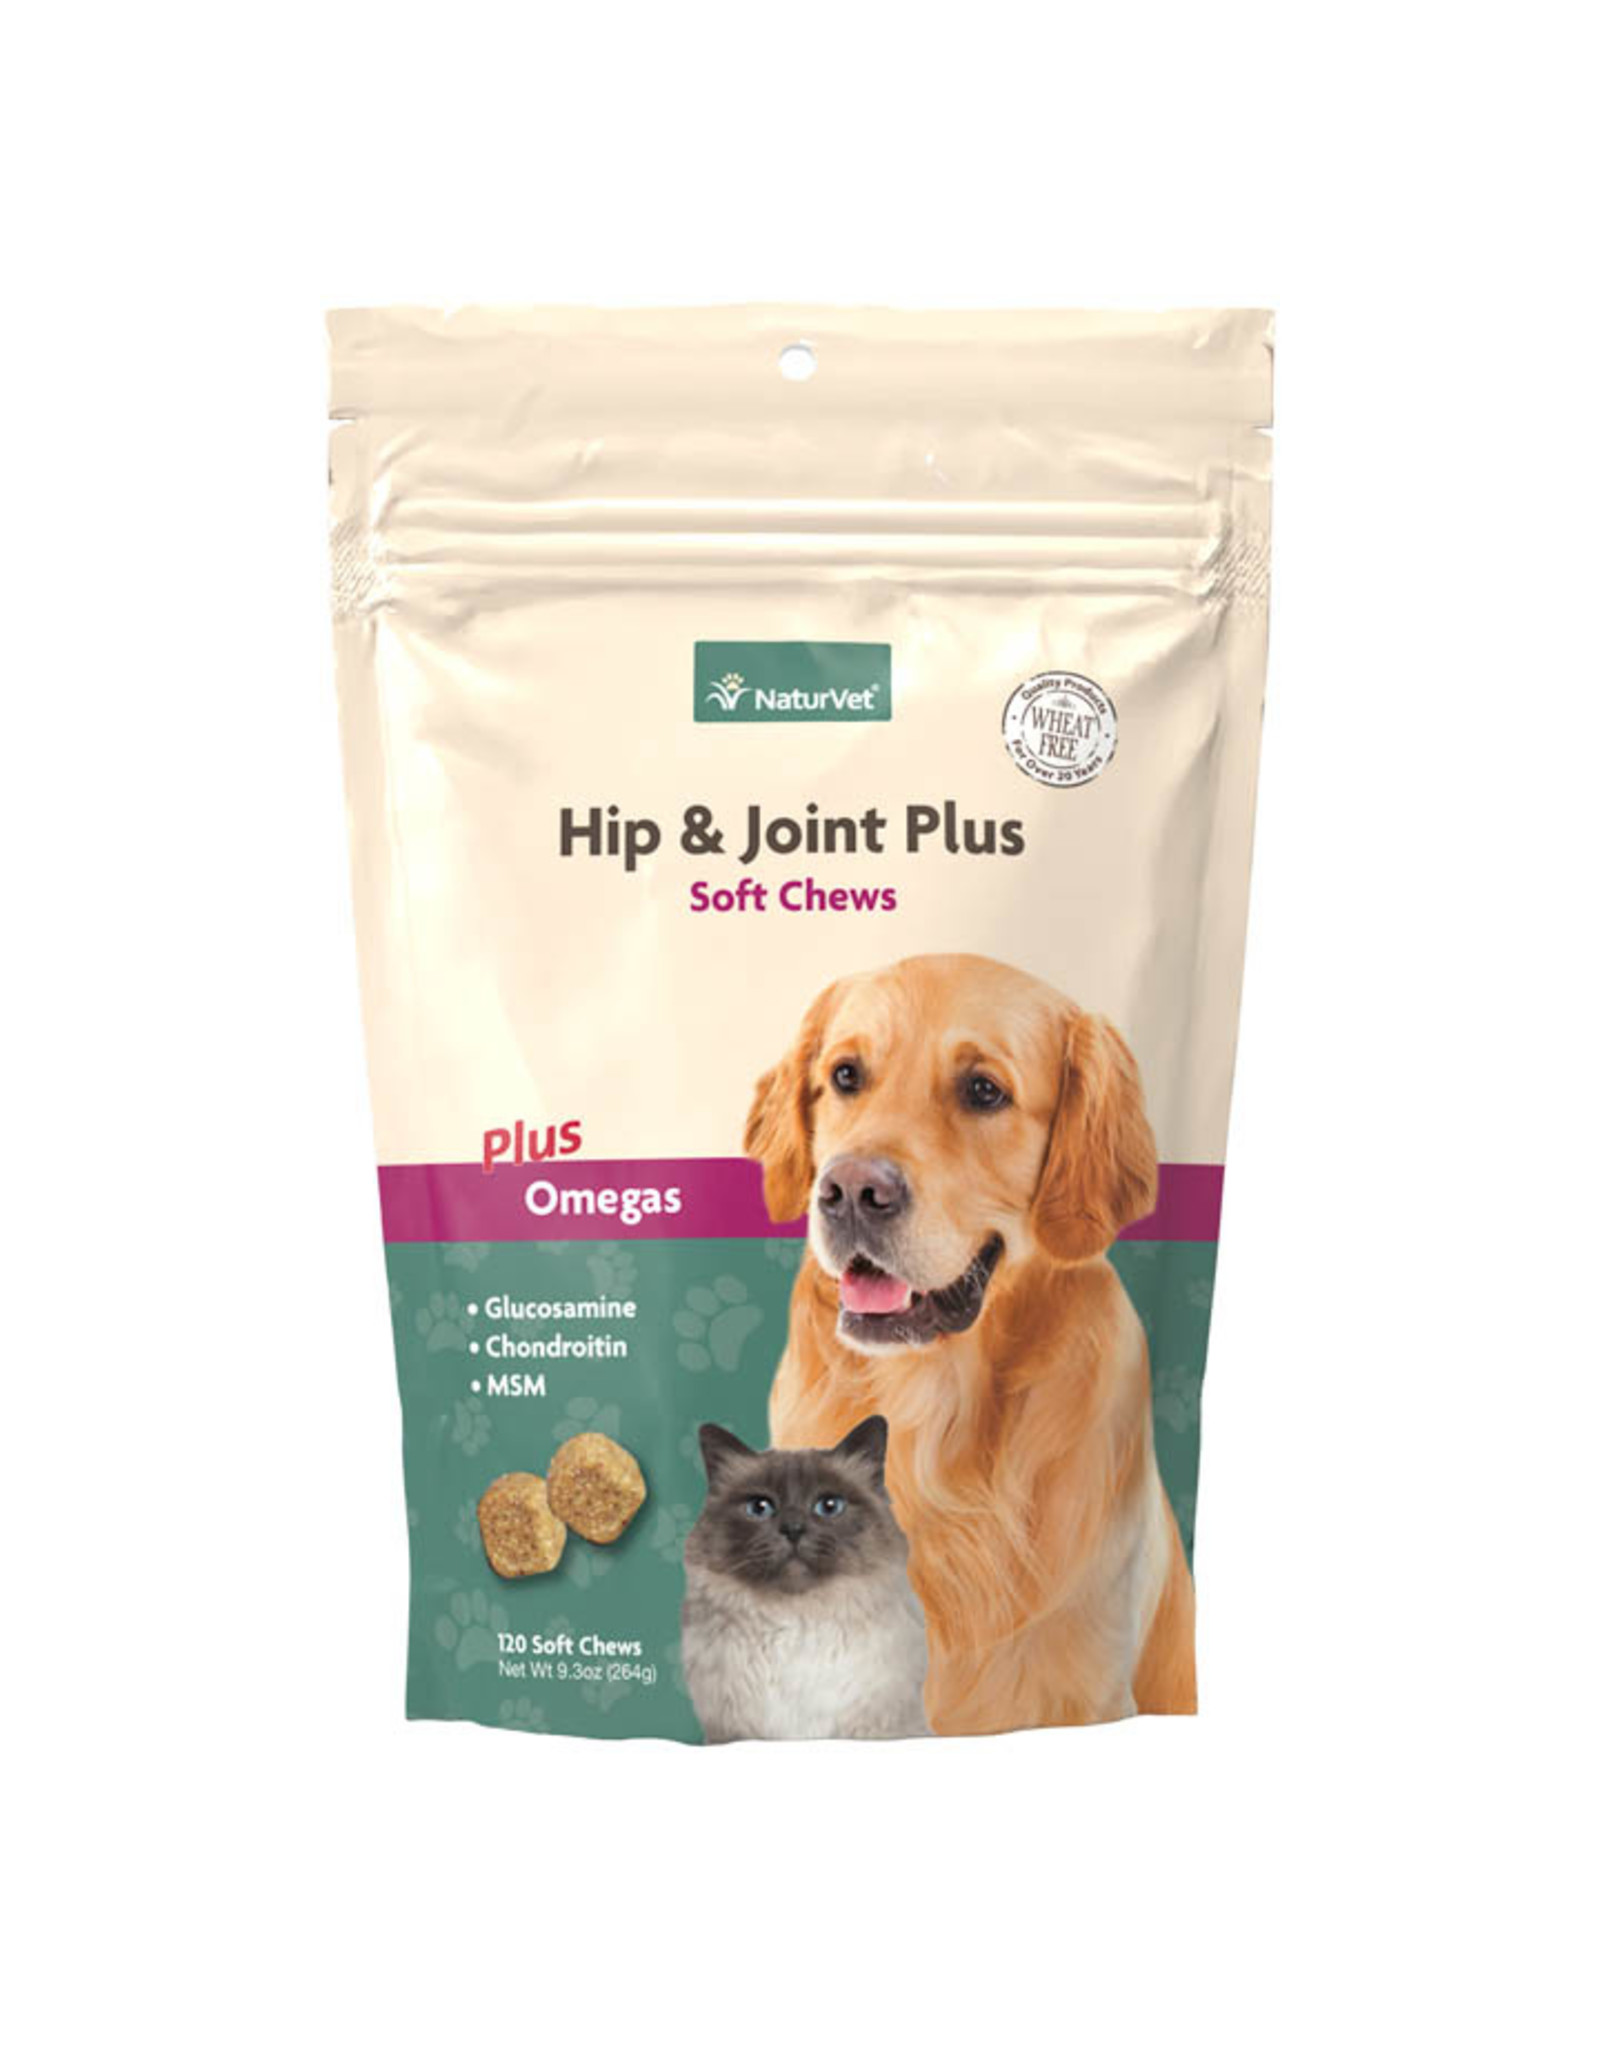 naturVet NaturVet Hip & Joint Chews plus Omegas for Dogs and Cats 120ct